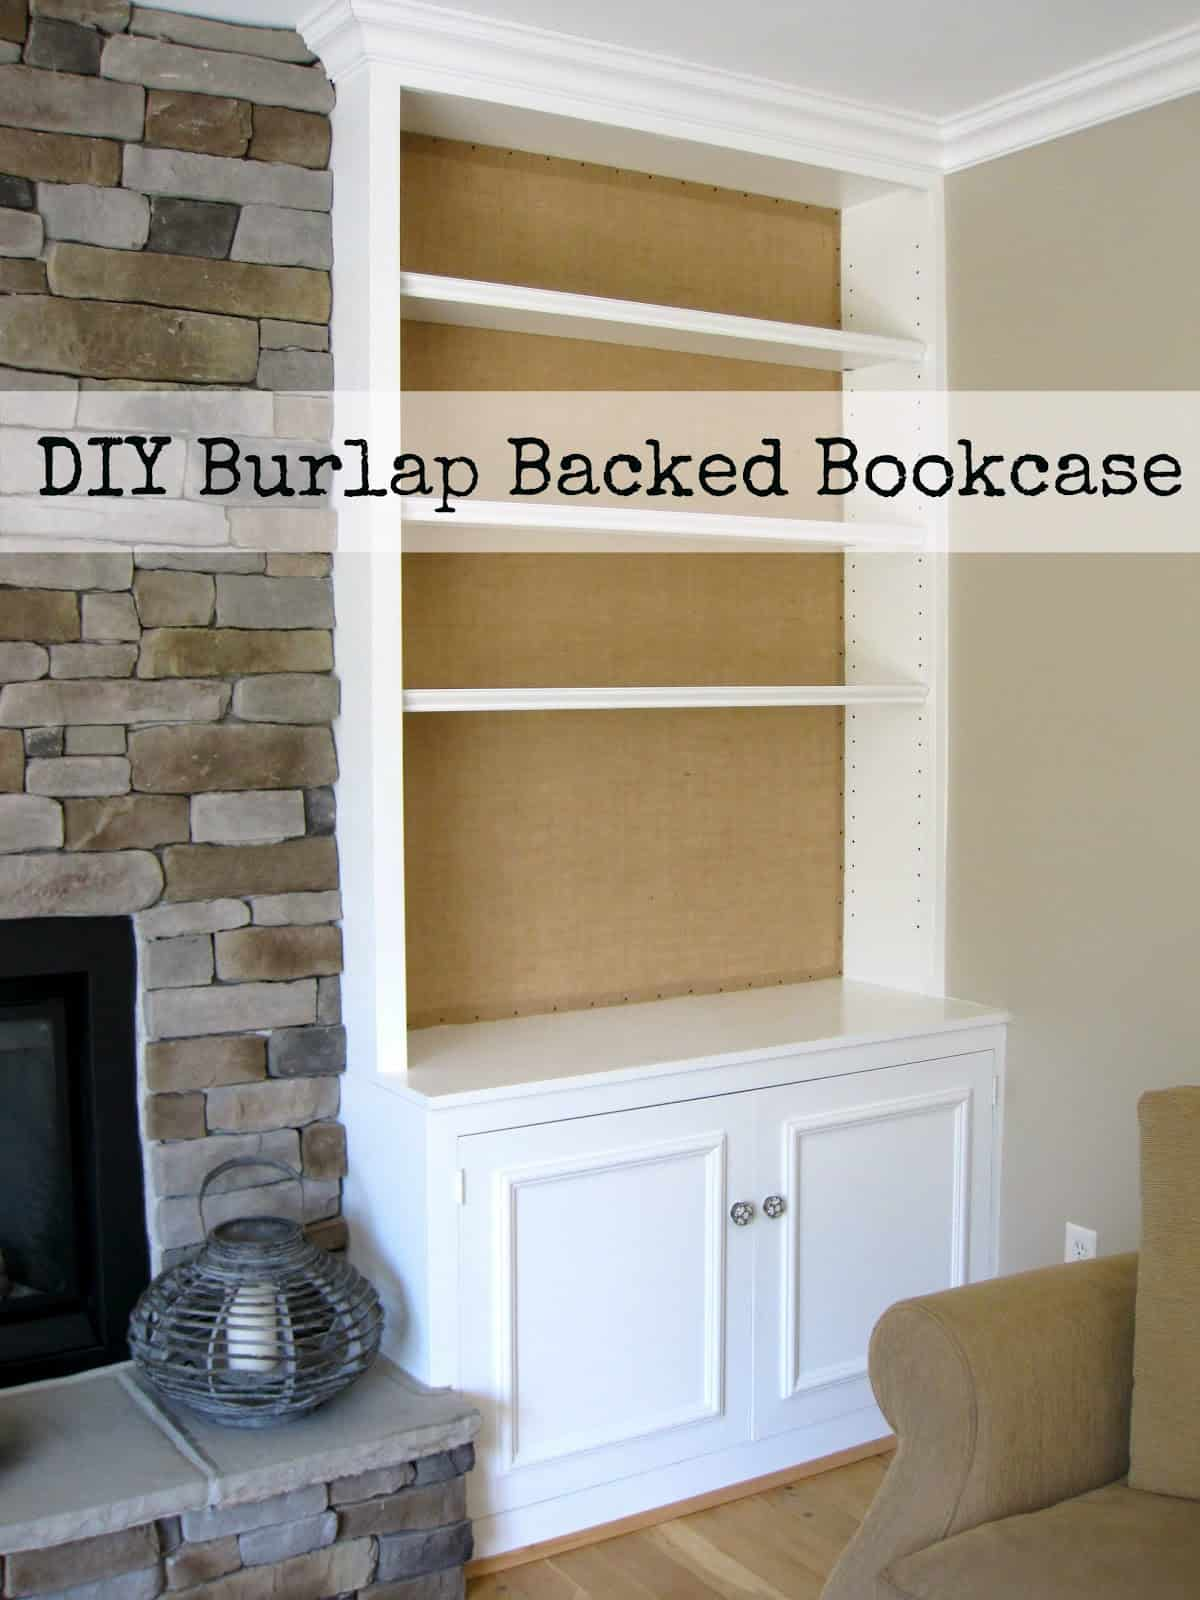 Burlap backed bookcase